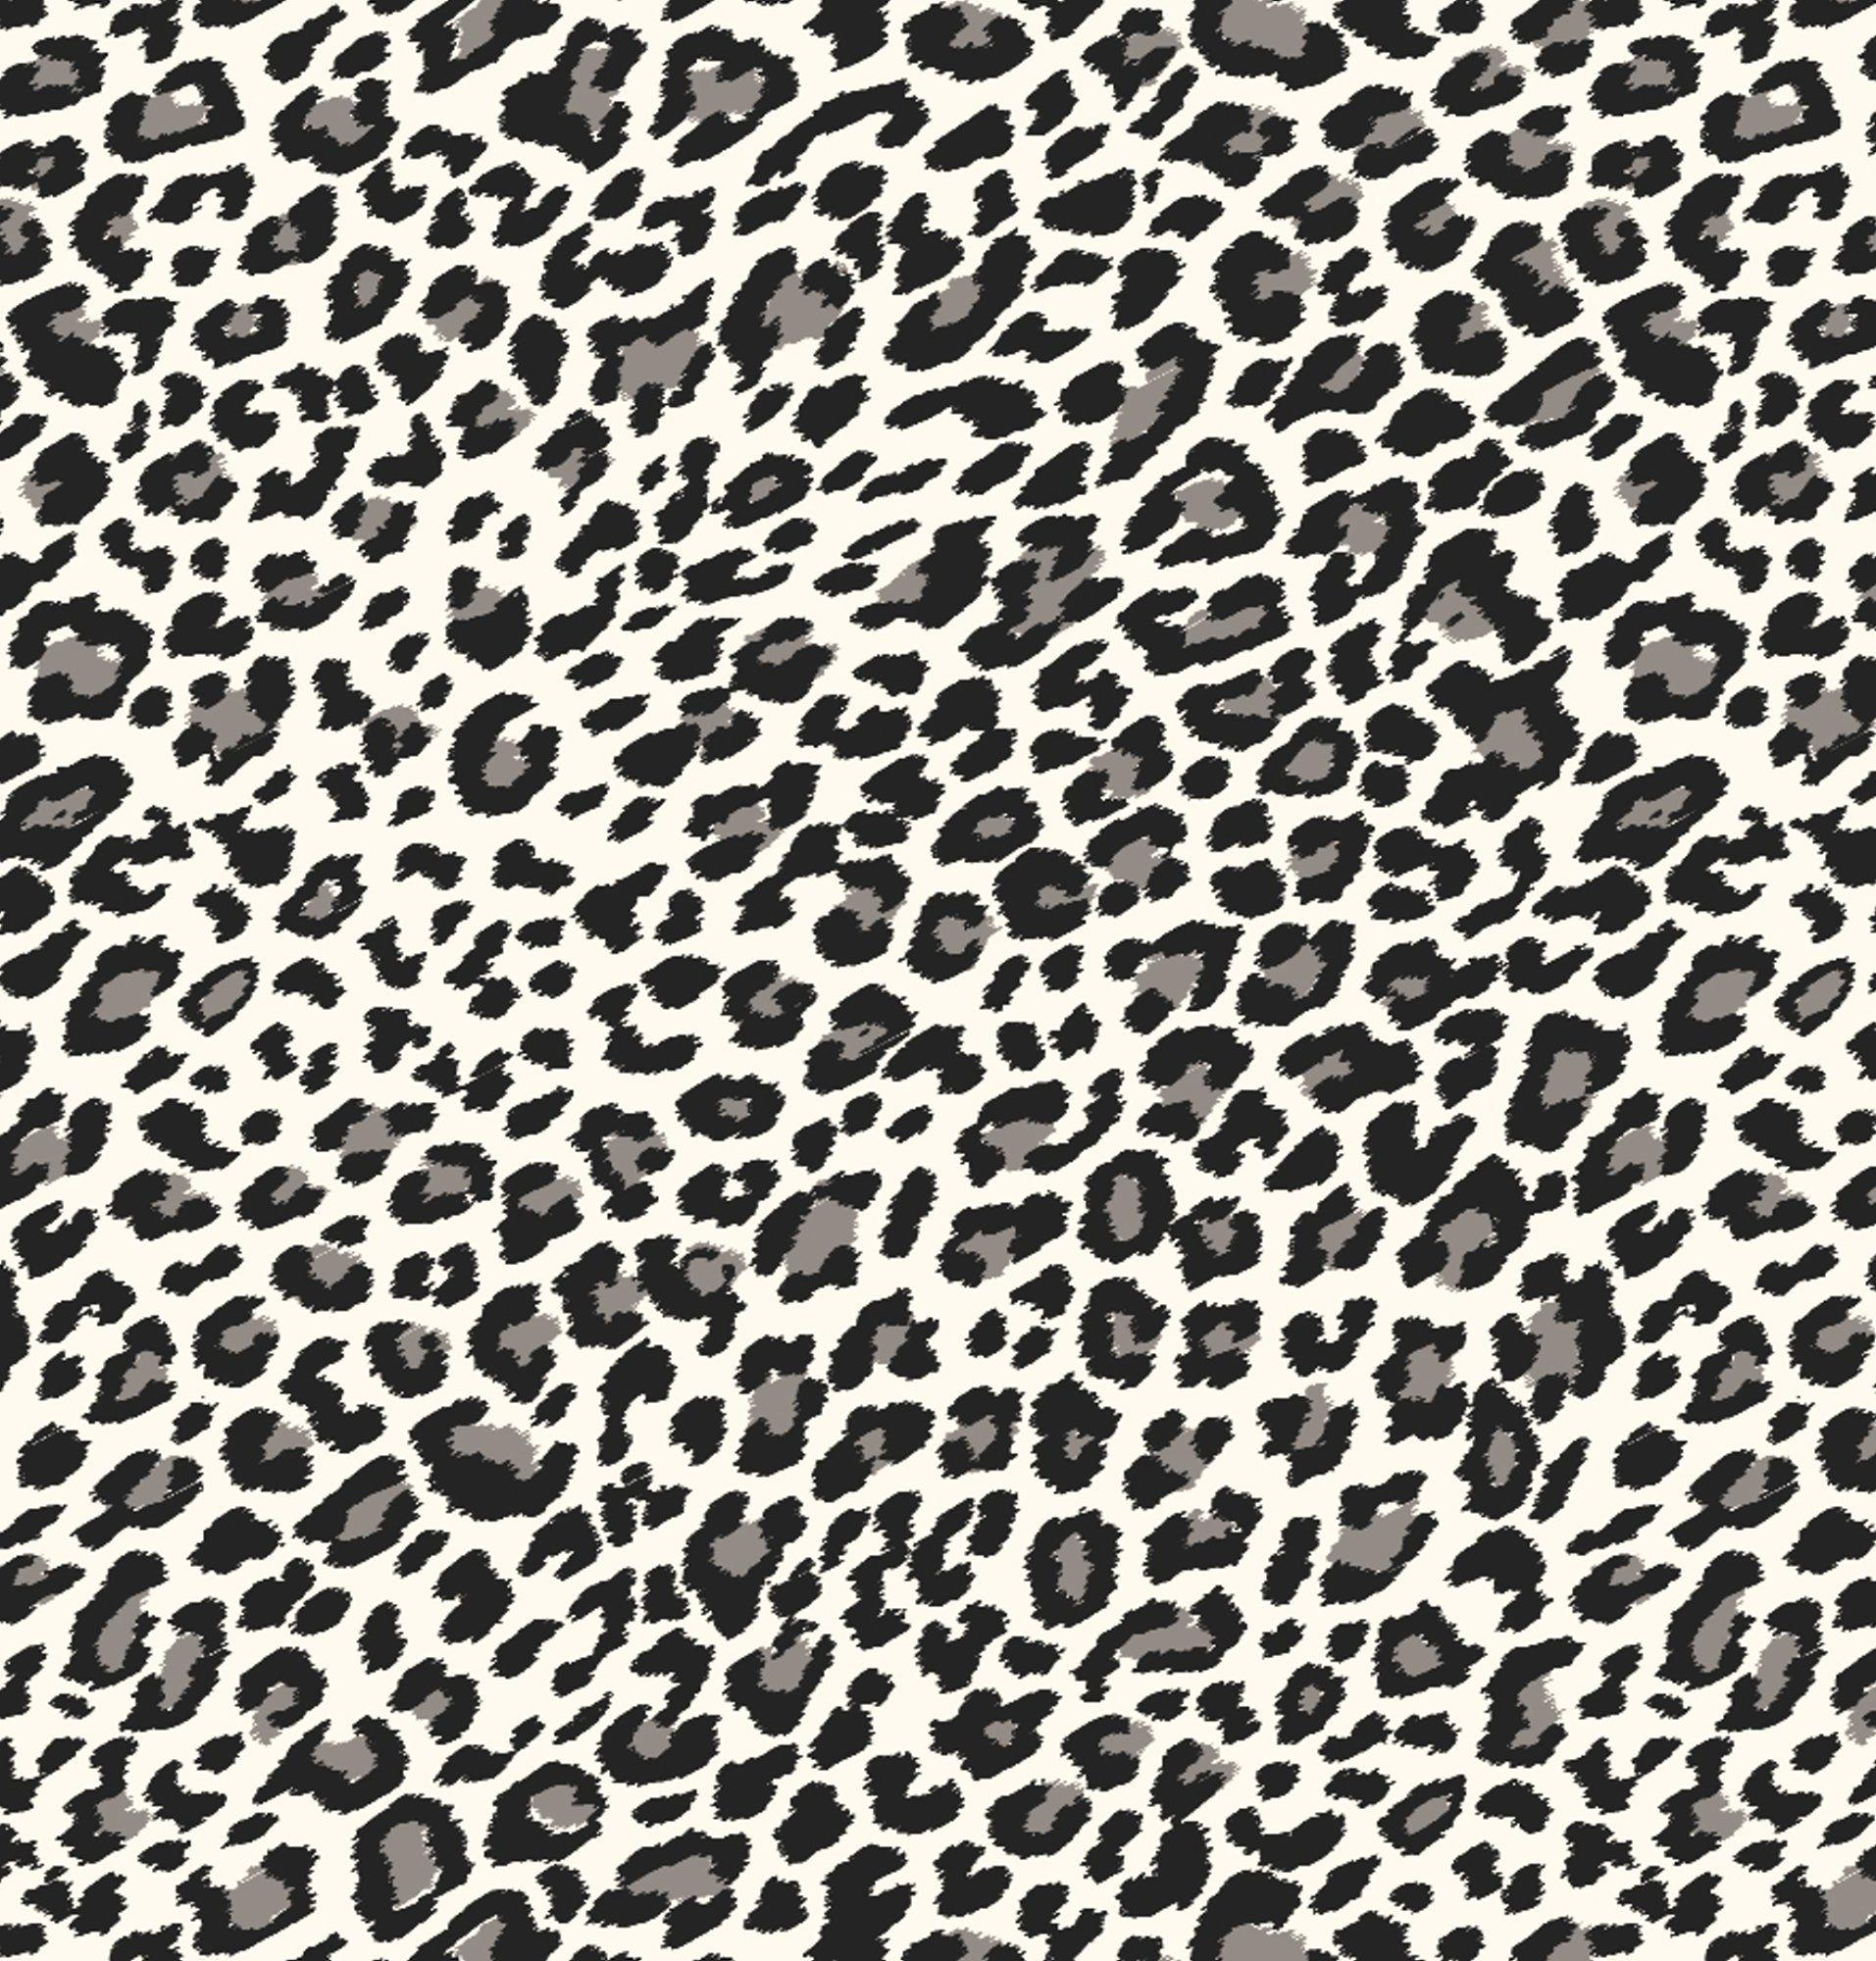 Black Cheetah Wallpapers - Wallpaper Cave